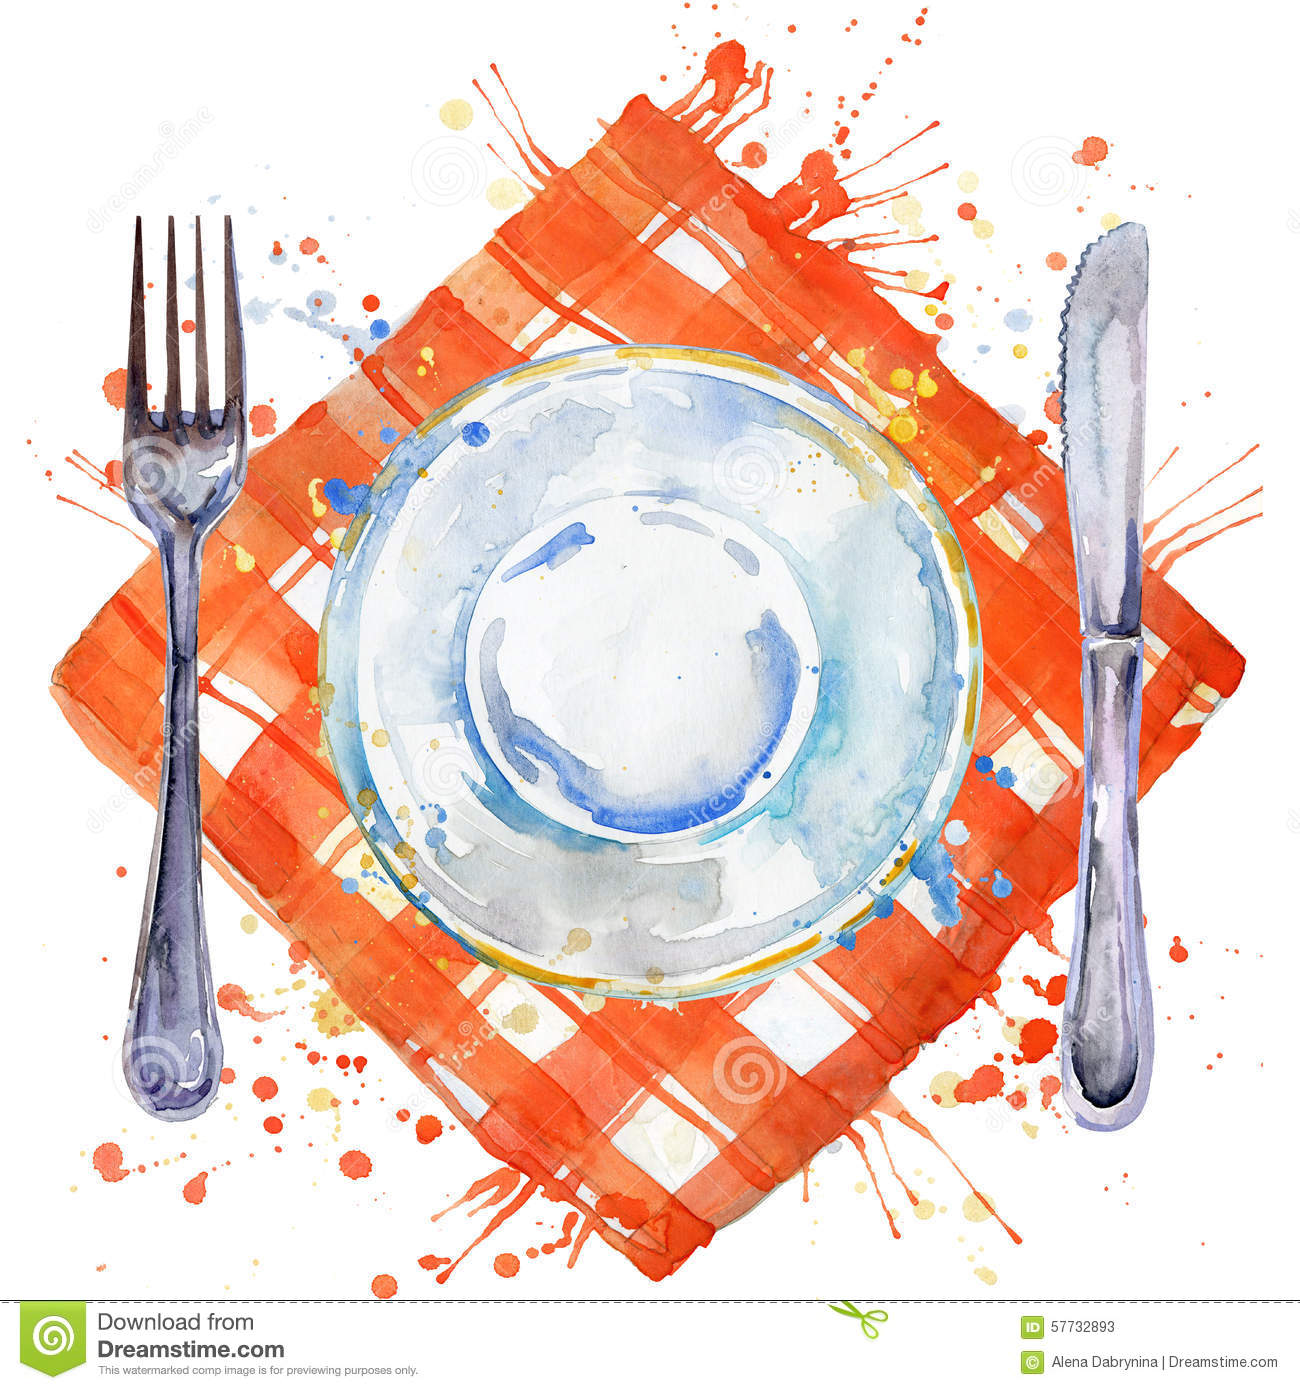 Tableware Cutlery Plates For Food Fork Table Knife And  : tableware cutlery plates food fork table knife cloth napkin watercolor background illustration 57732893 from www.dreamstime.com size 1300 x 1390 jpeg 260kB